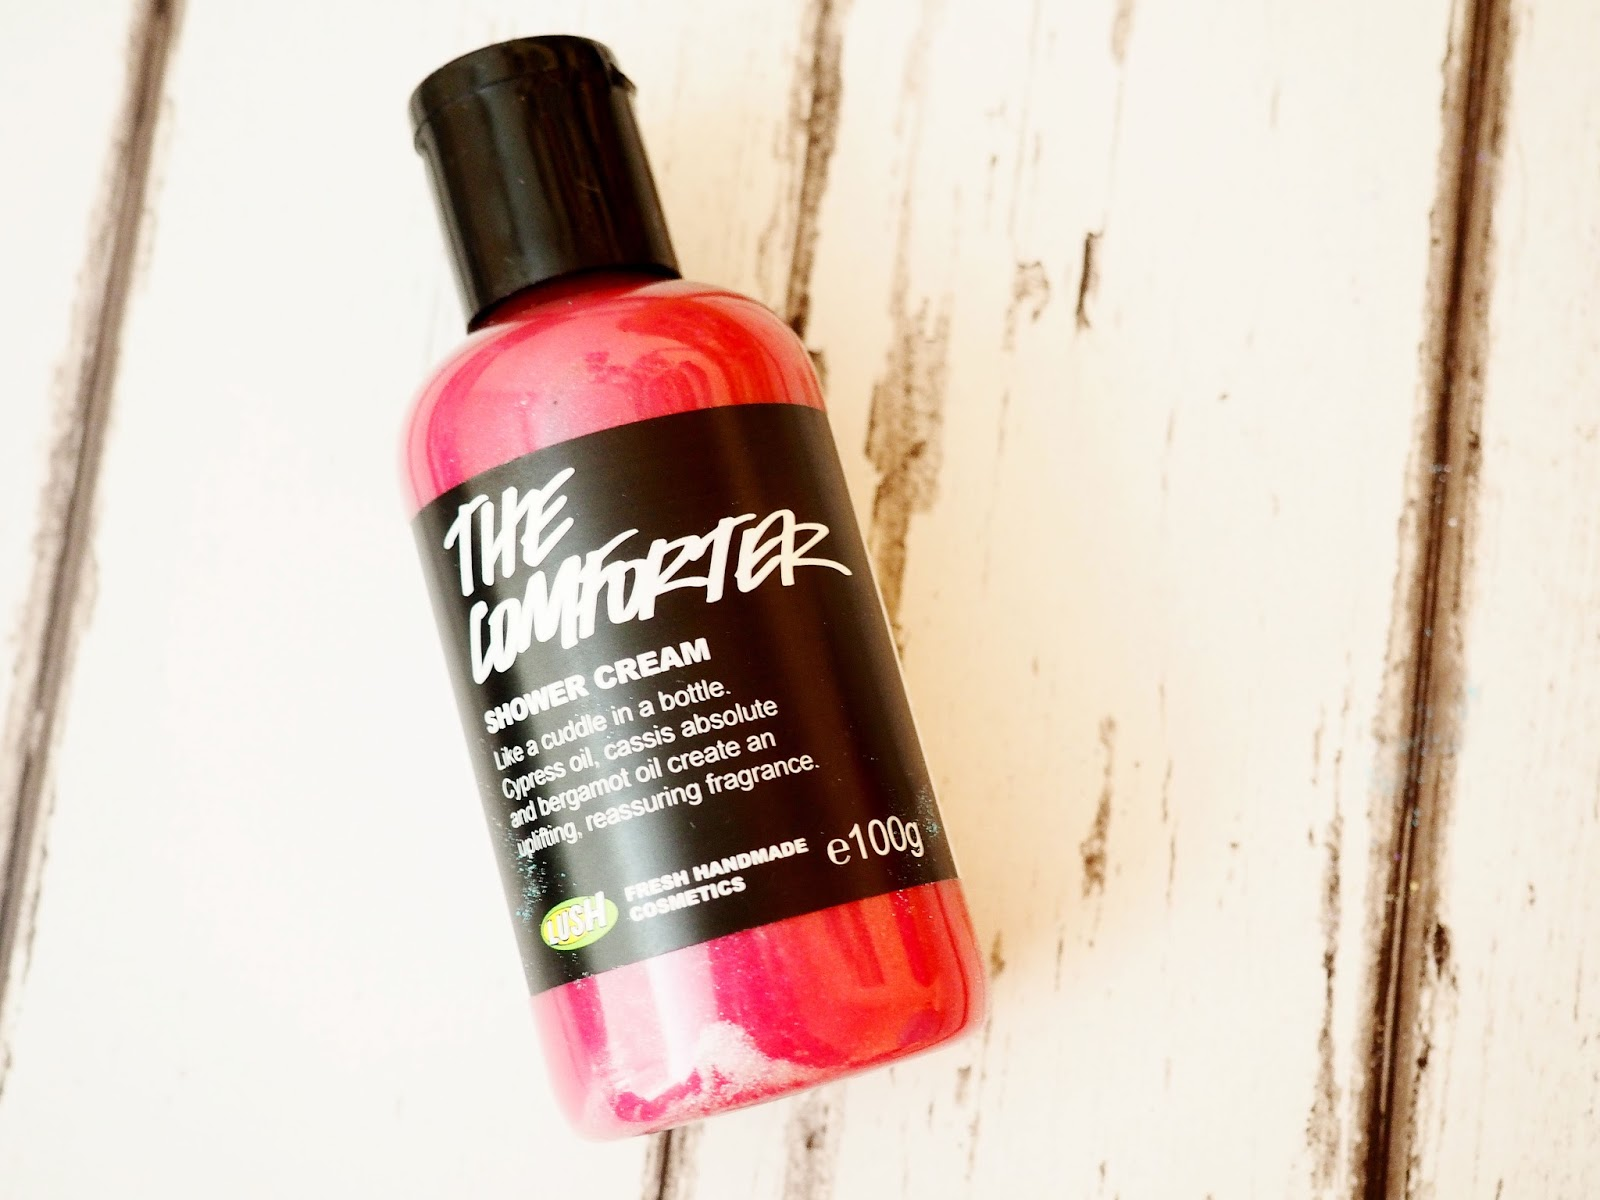 Lush The Comforter Shower Cream